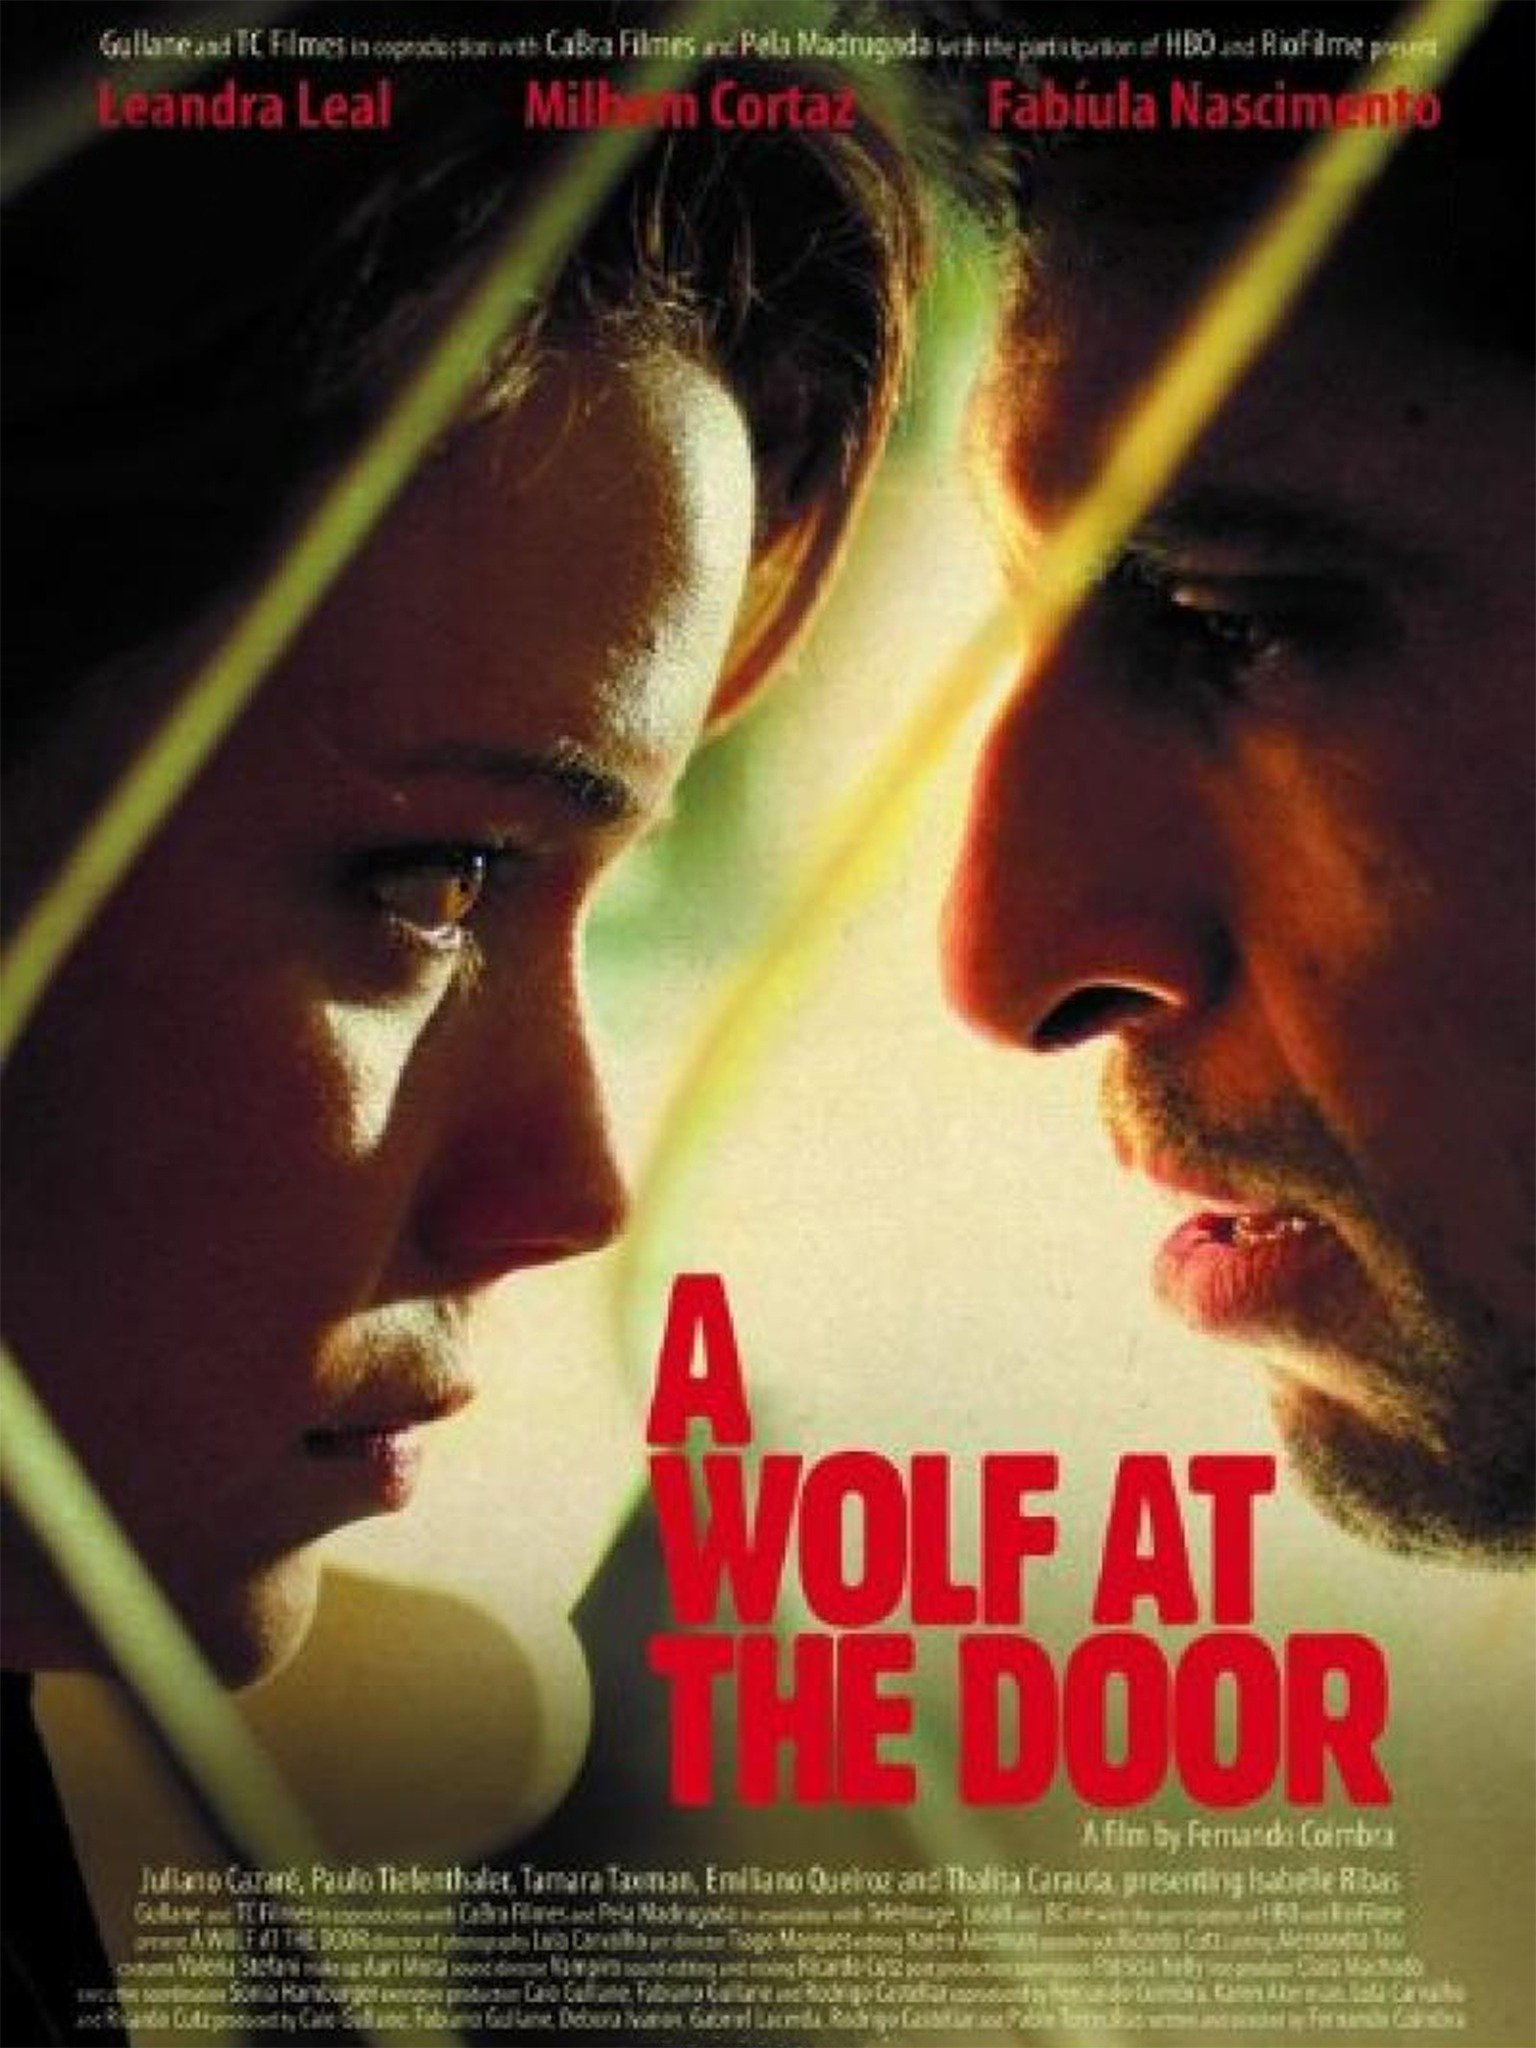 A Wolf at the Door (O Lobo atrás da Porta)